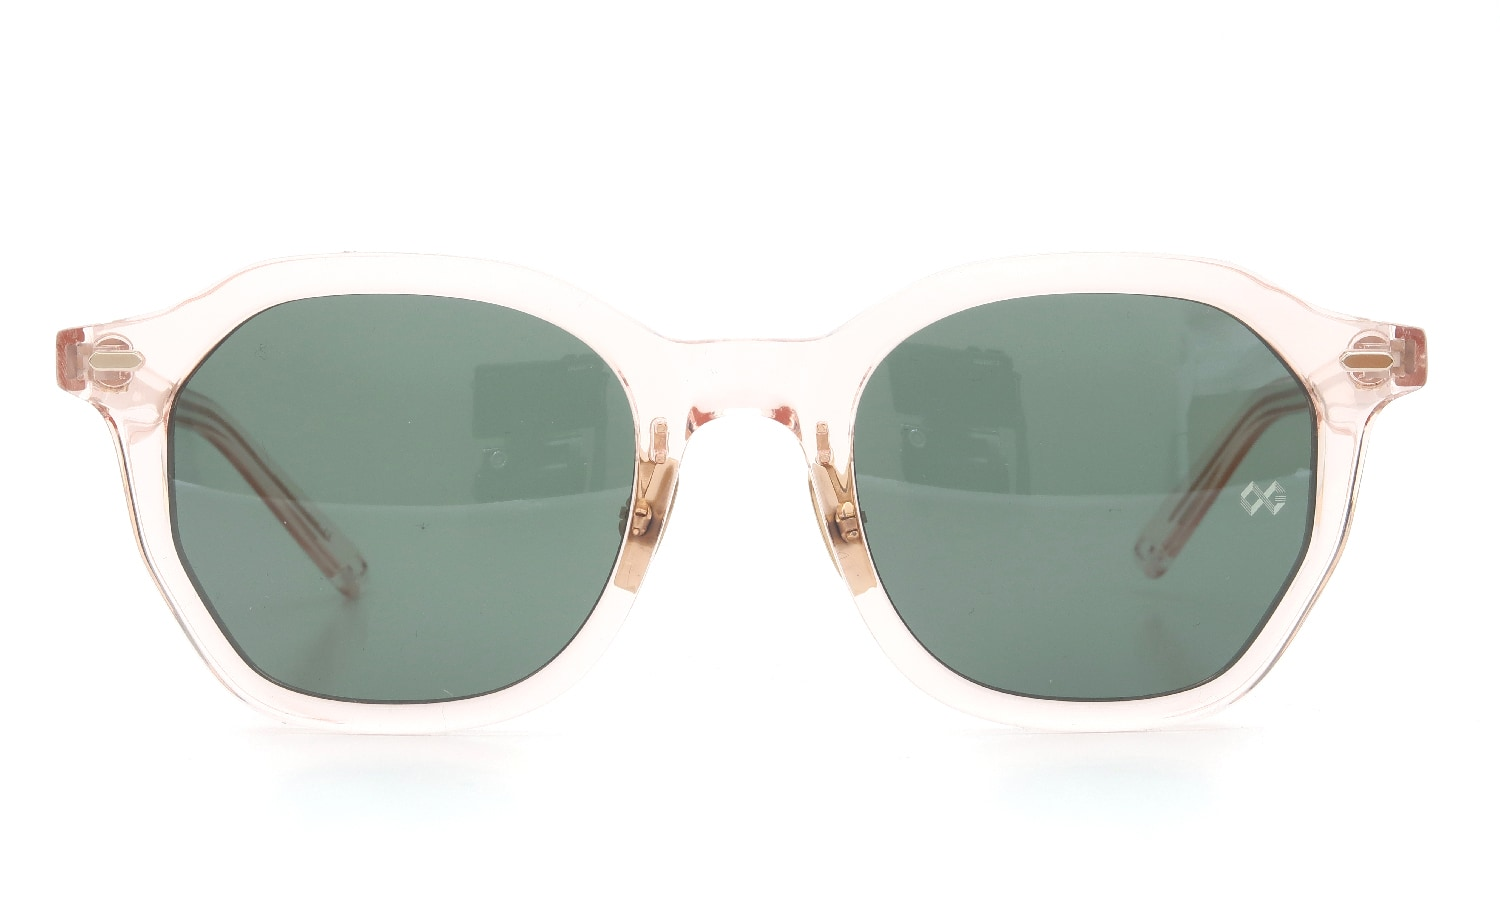 OG × OLIVER GOLDSMITH Re:BETSY 49 SG リ:ベッツィ 2